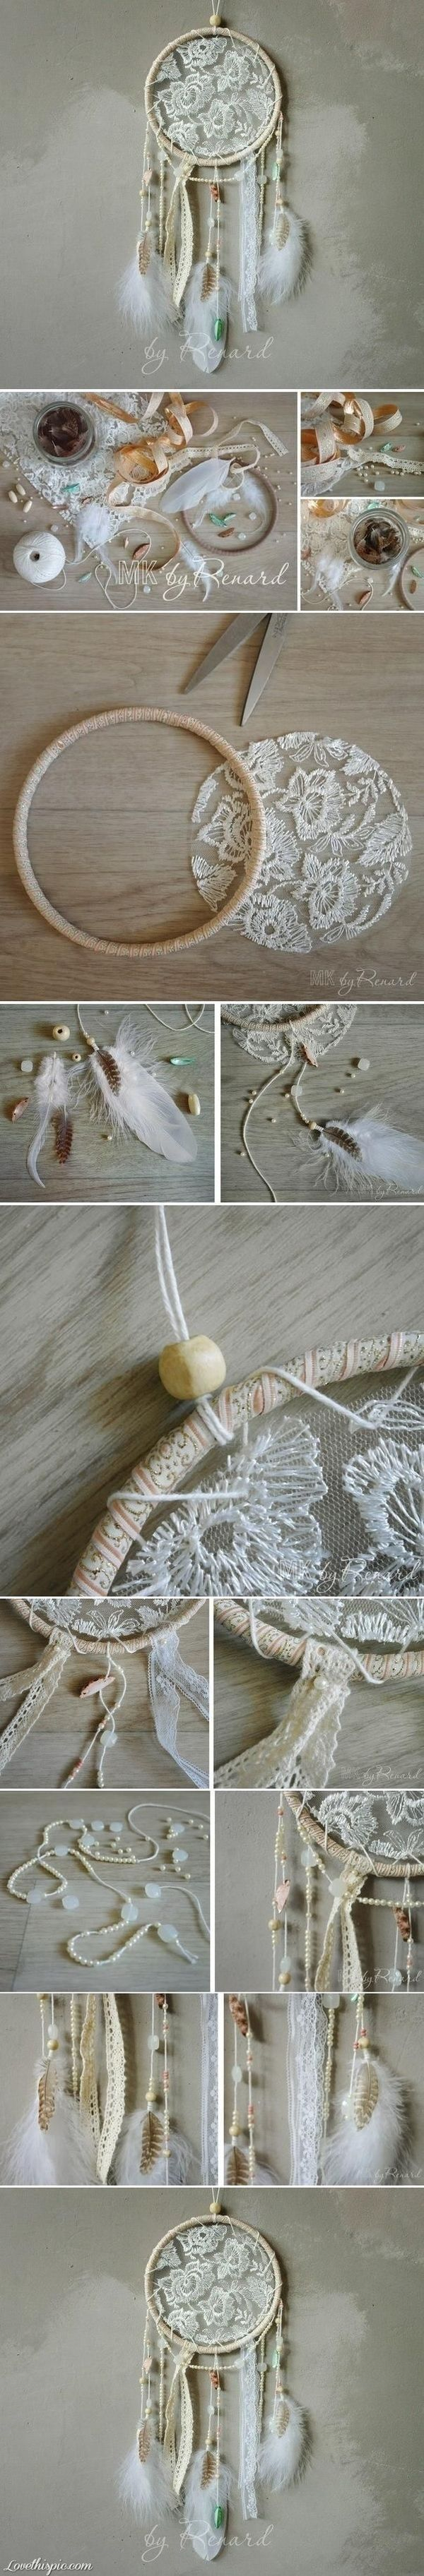 Make your own dream catcher!^_^